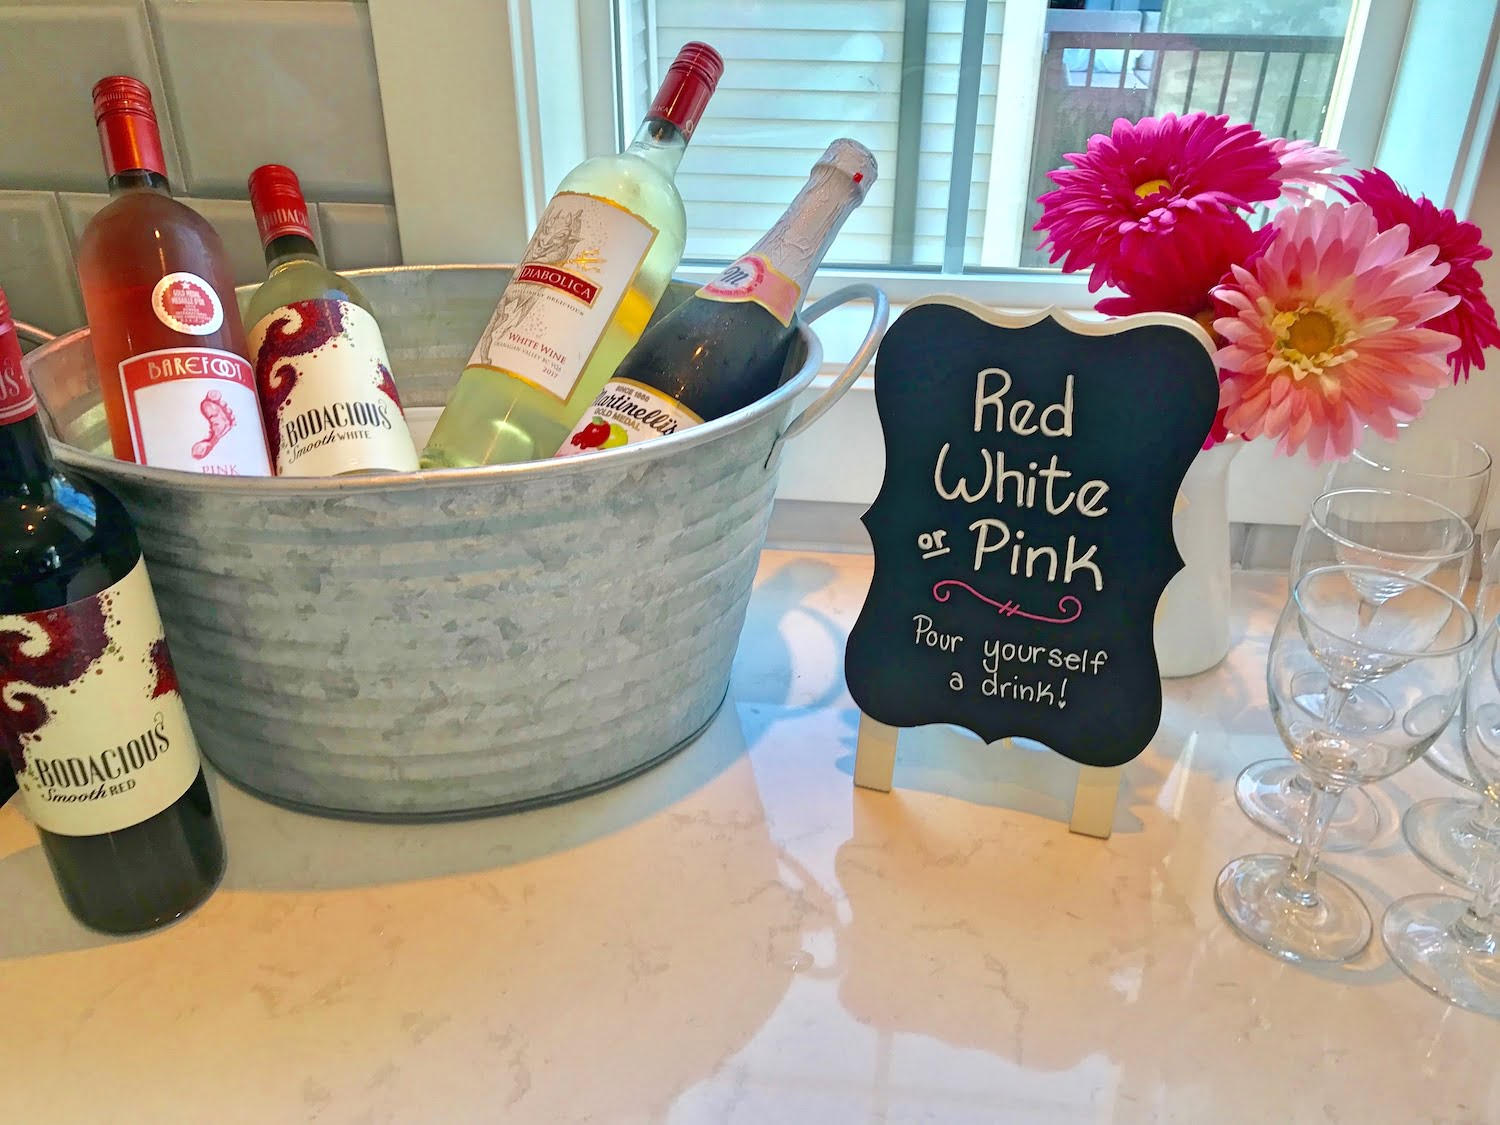 Bucket of Wine and Sign - Red, White or Pink, Pour Yourself a Drink